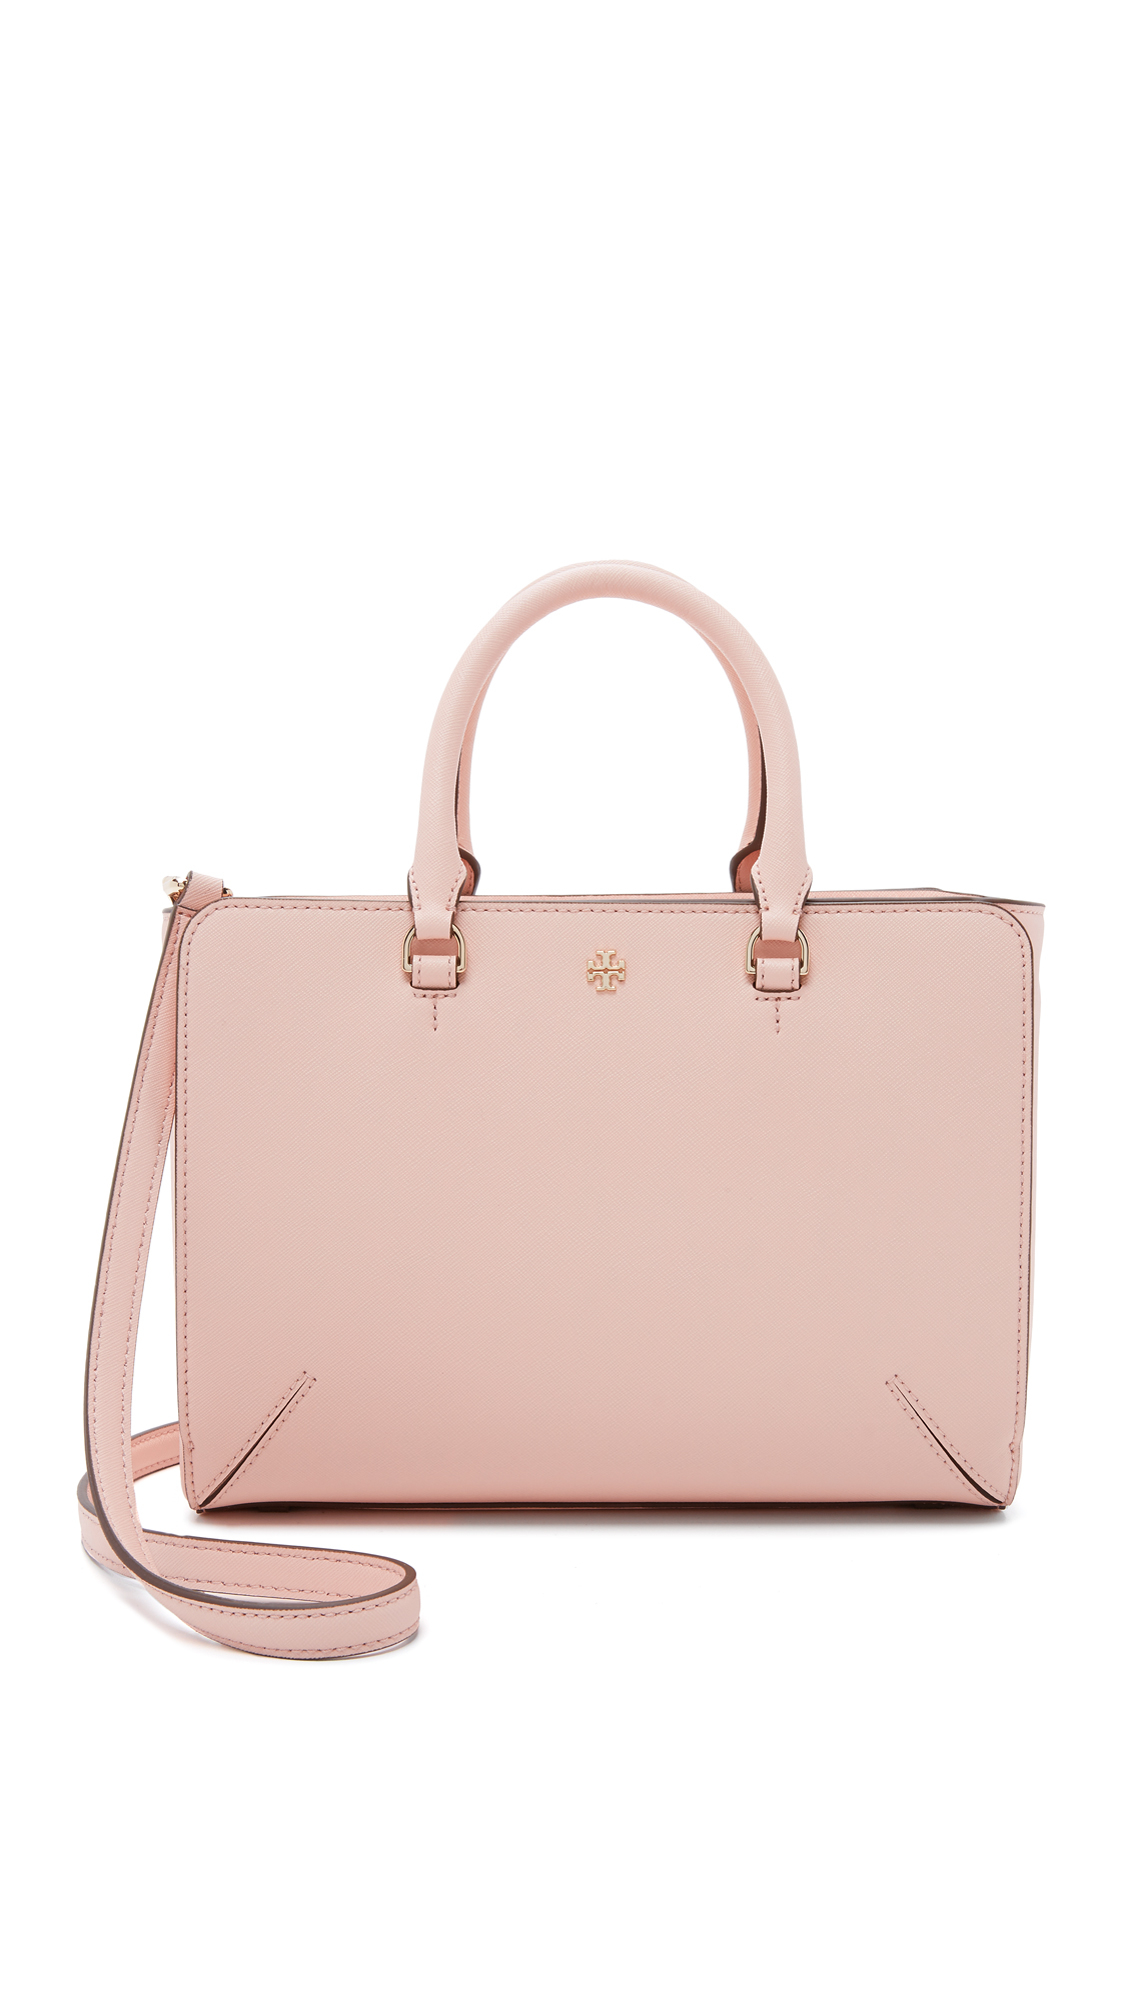 eb50458435f6 Tory Burch Robinson Small Zip Tote in Pink - Lyst